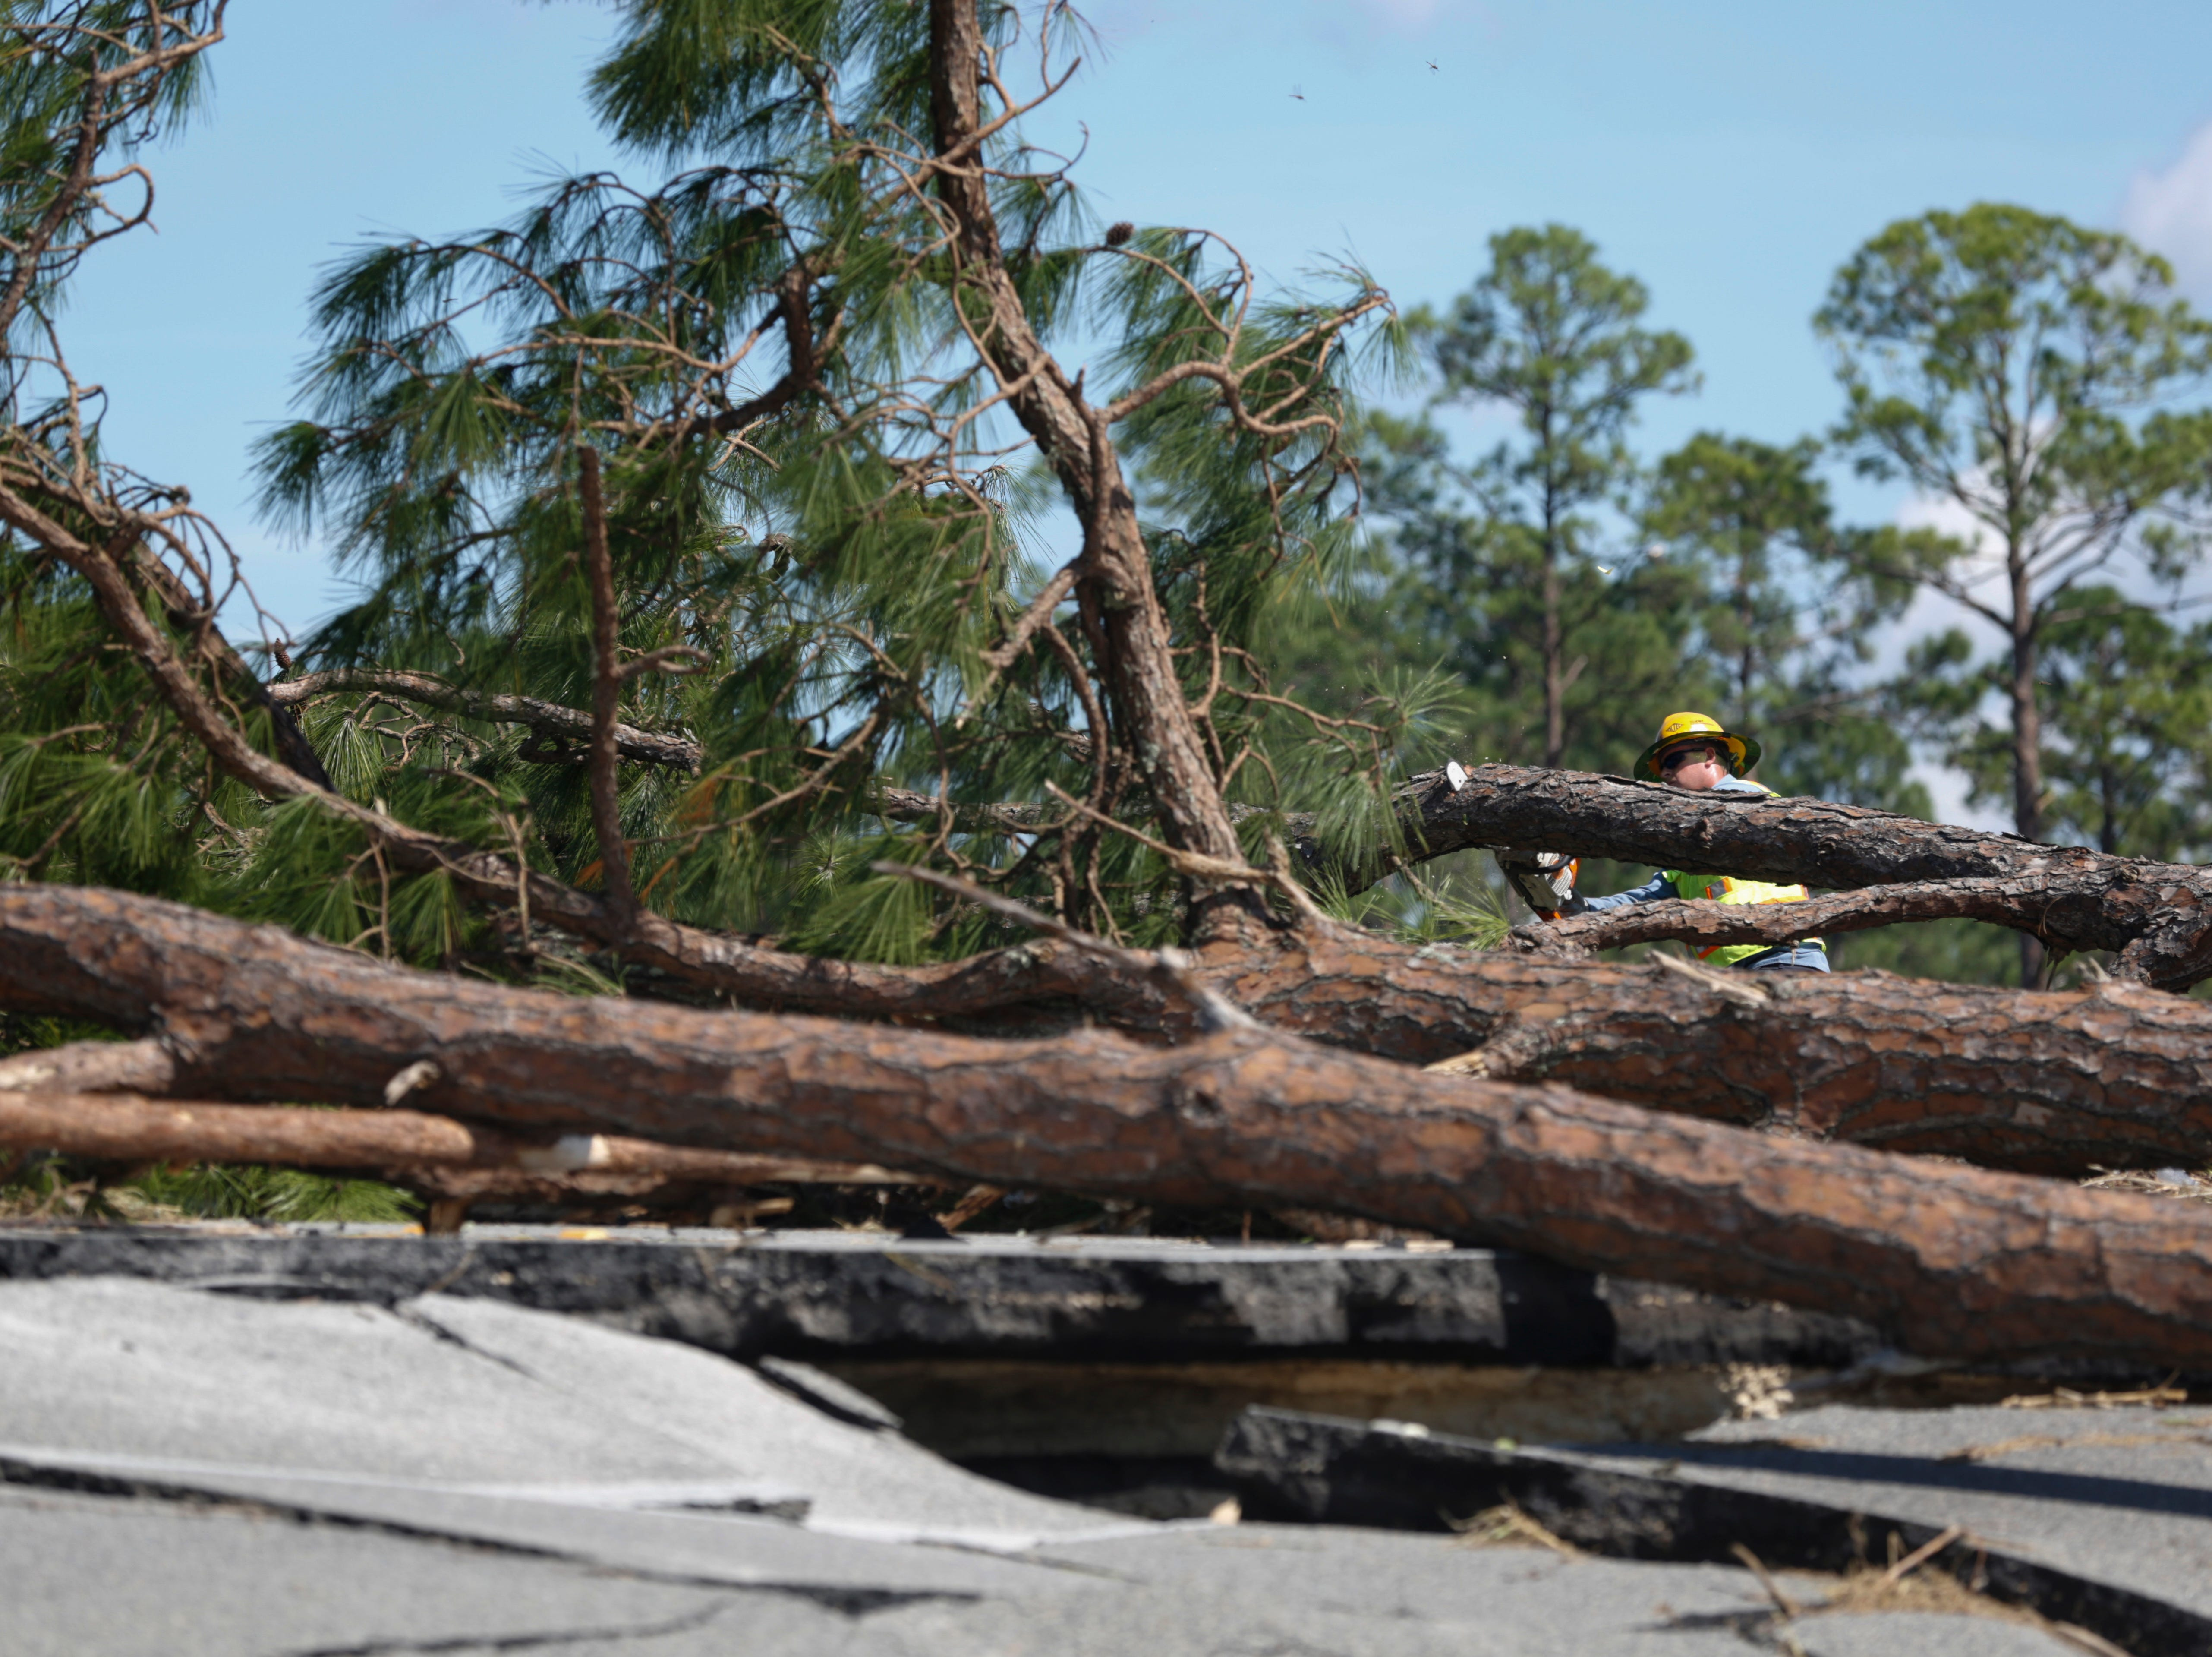 Crews from Team Fishel work to remove trees fallen on U.S. Highway 98 in Eastpoint, Fla. following Hurricane Michael Thursday, Oct. 11, 2018.